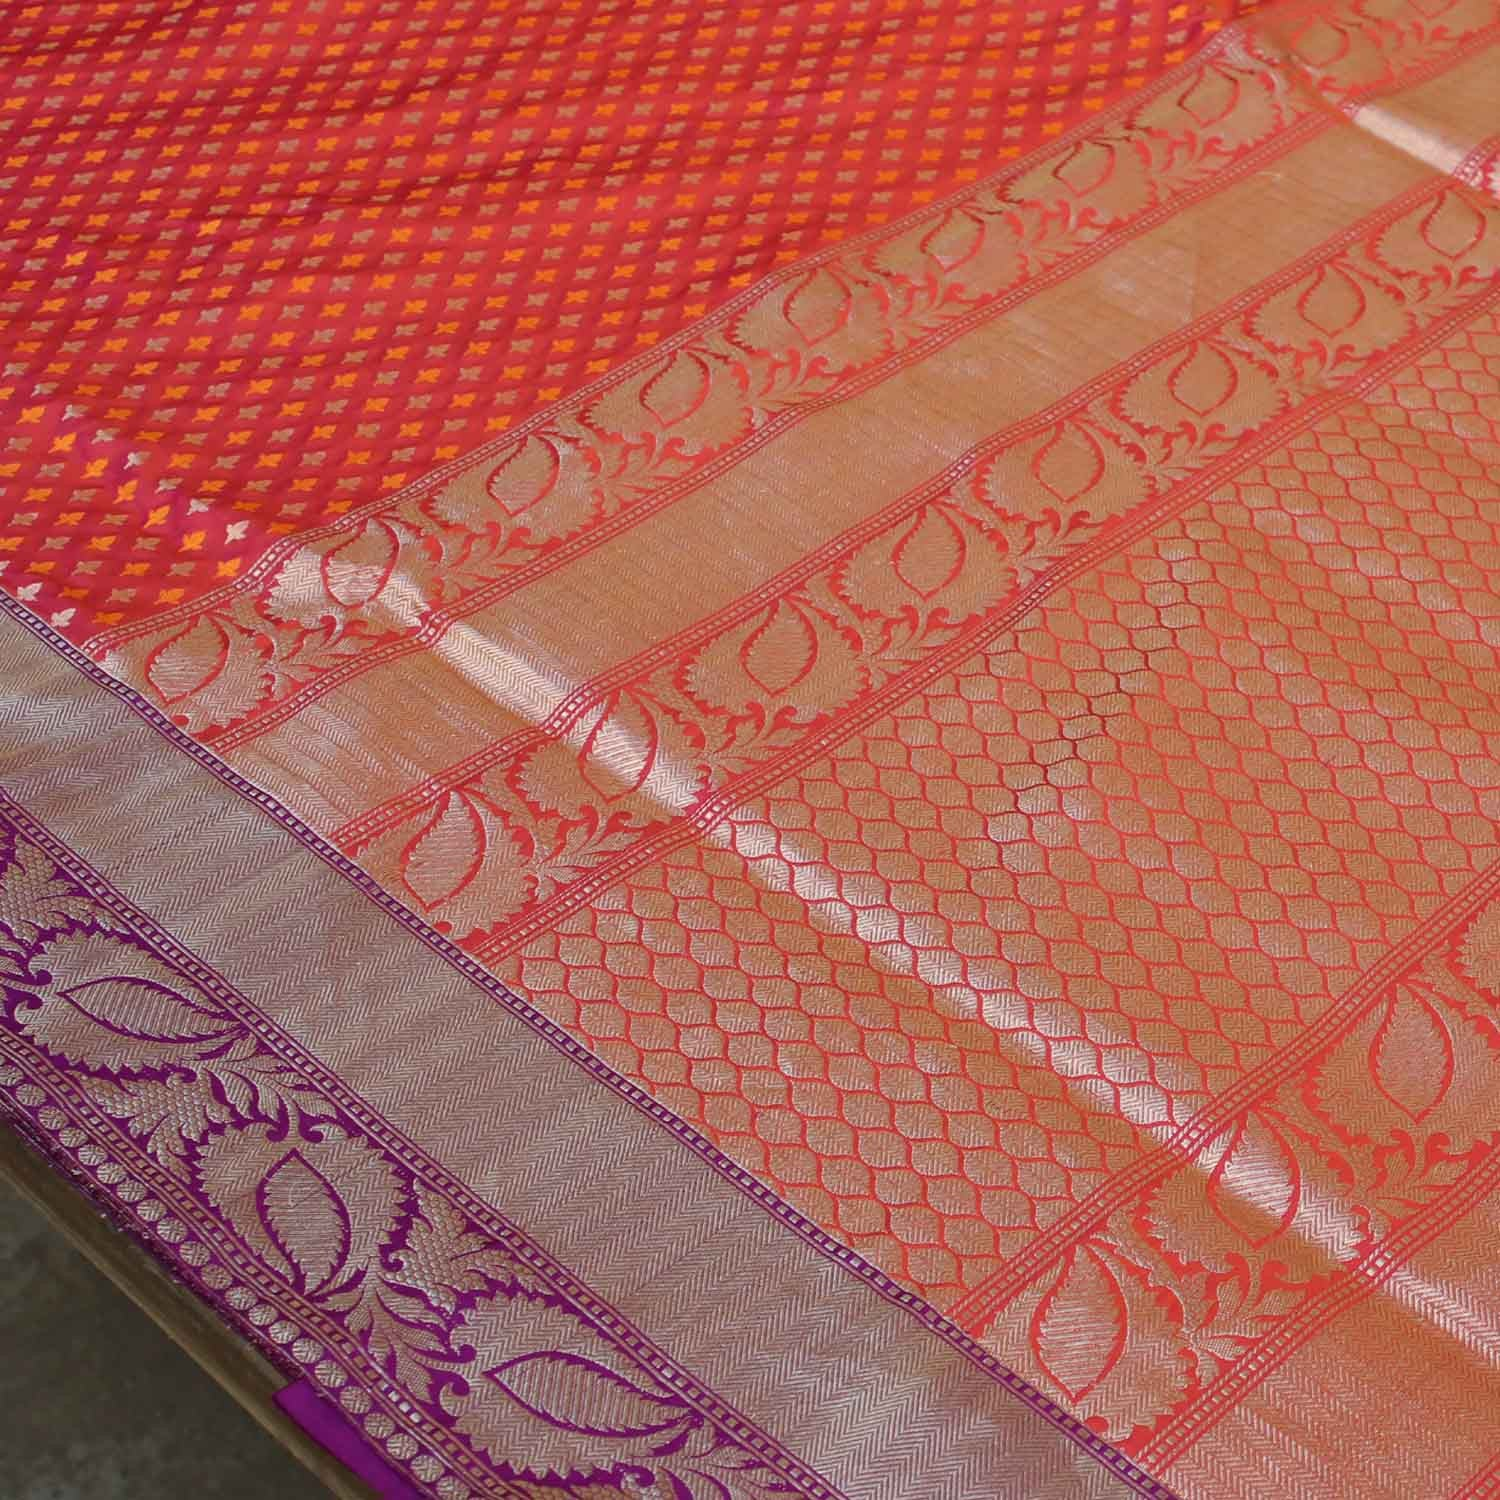 Orange-Indian Pink Pure Katan Silk Banarasi Handloom Saree - Tilfi - 2